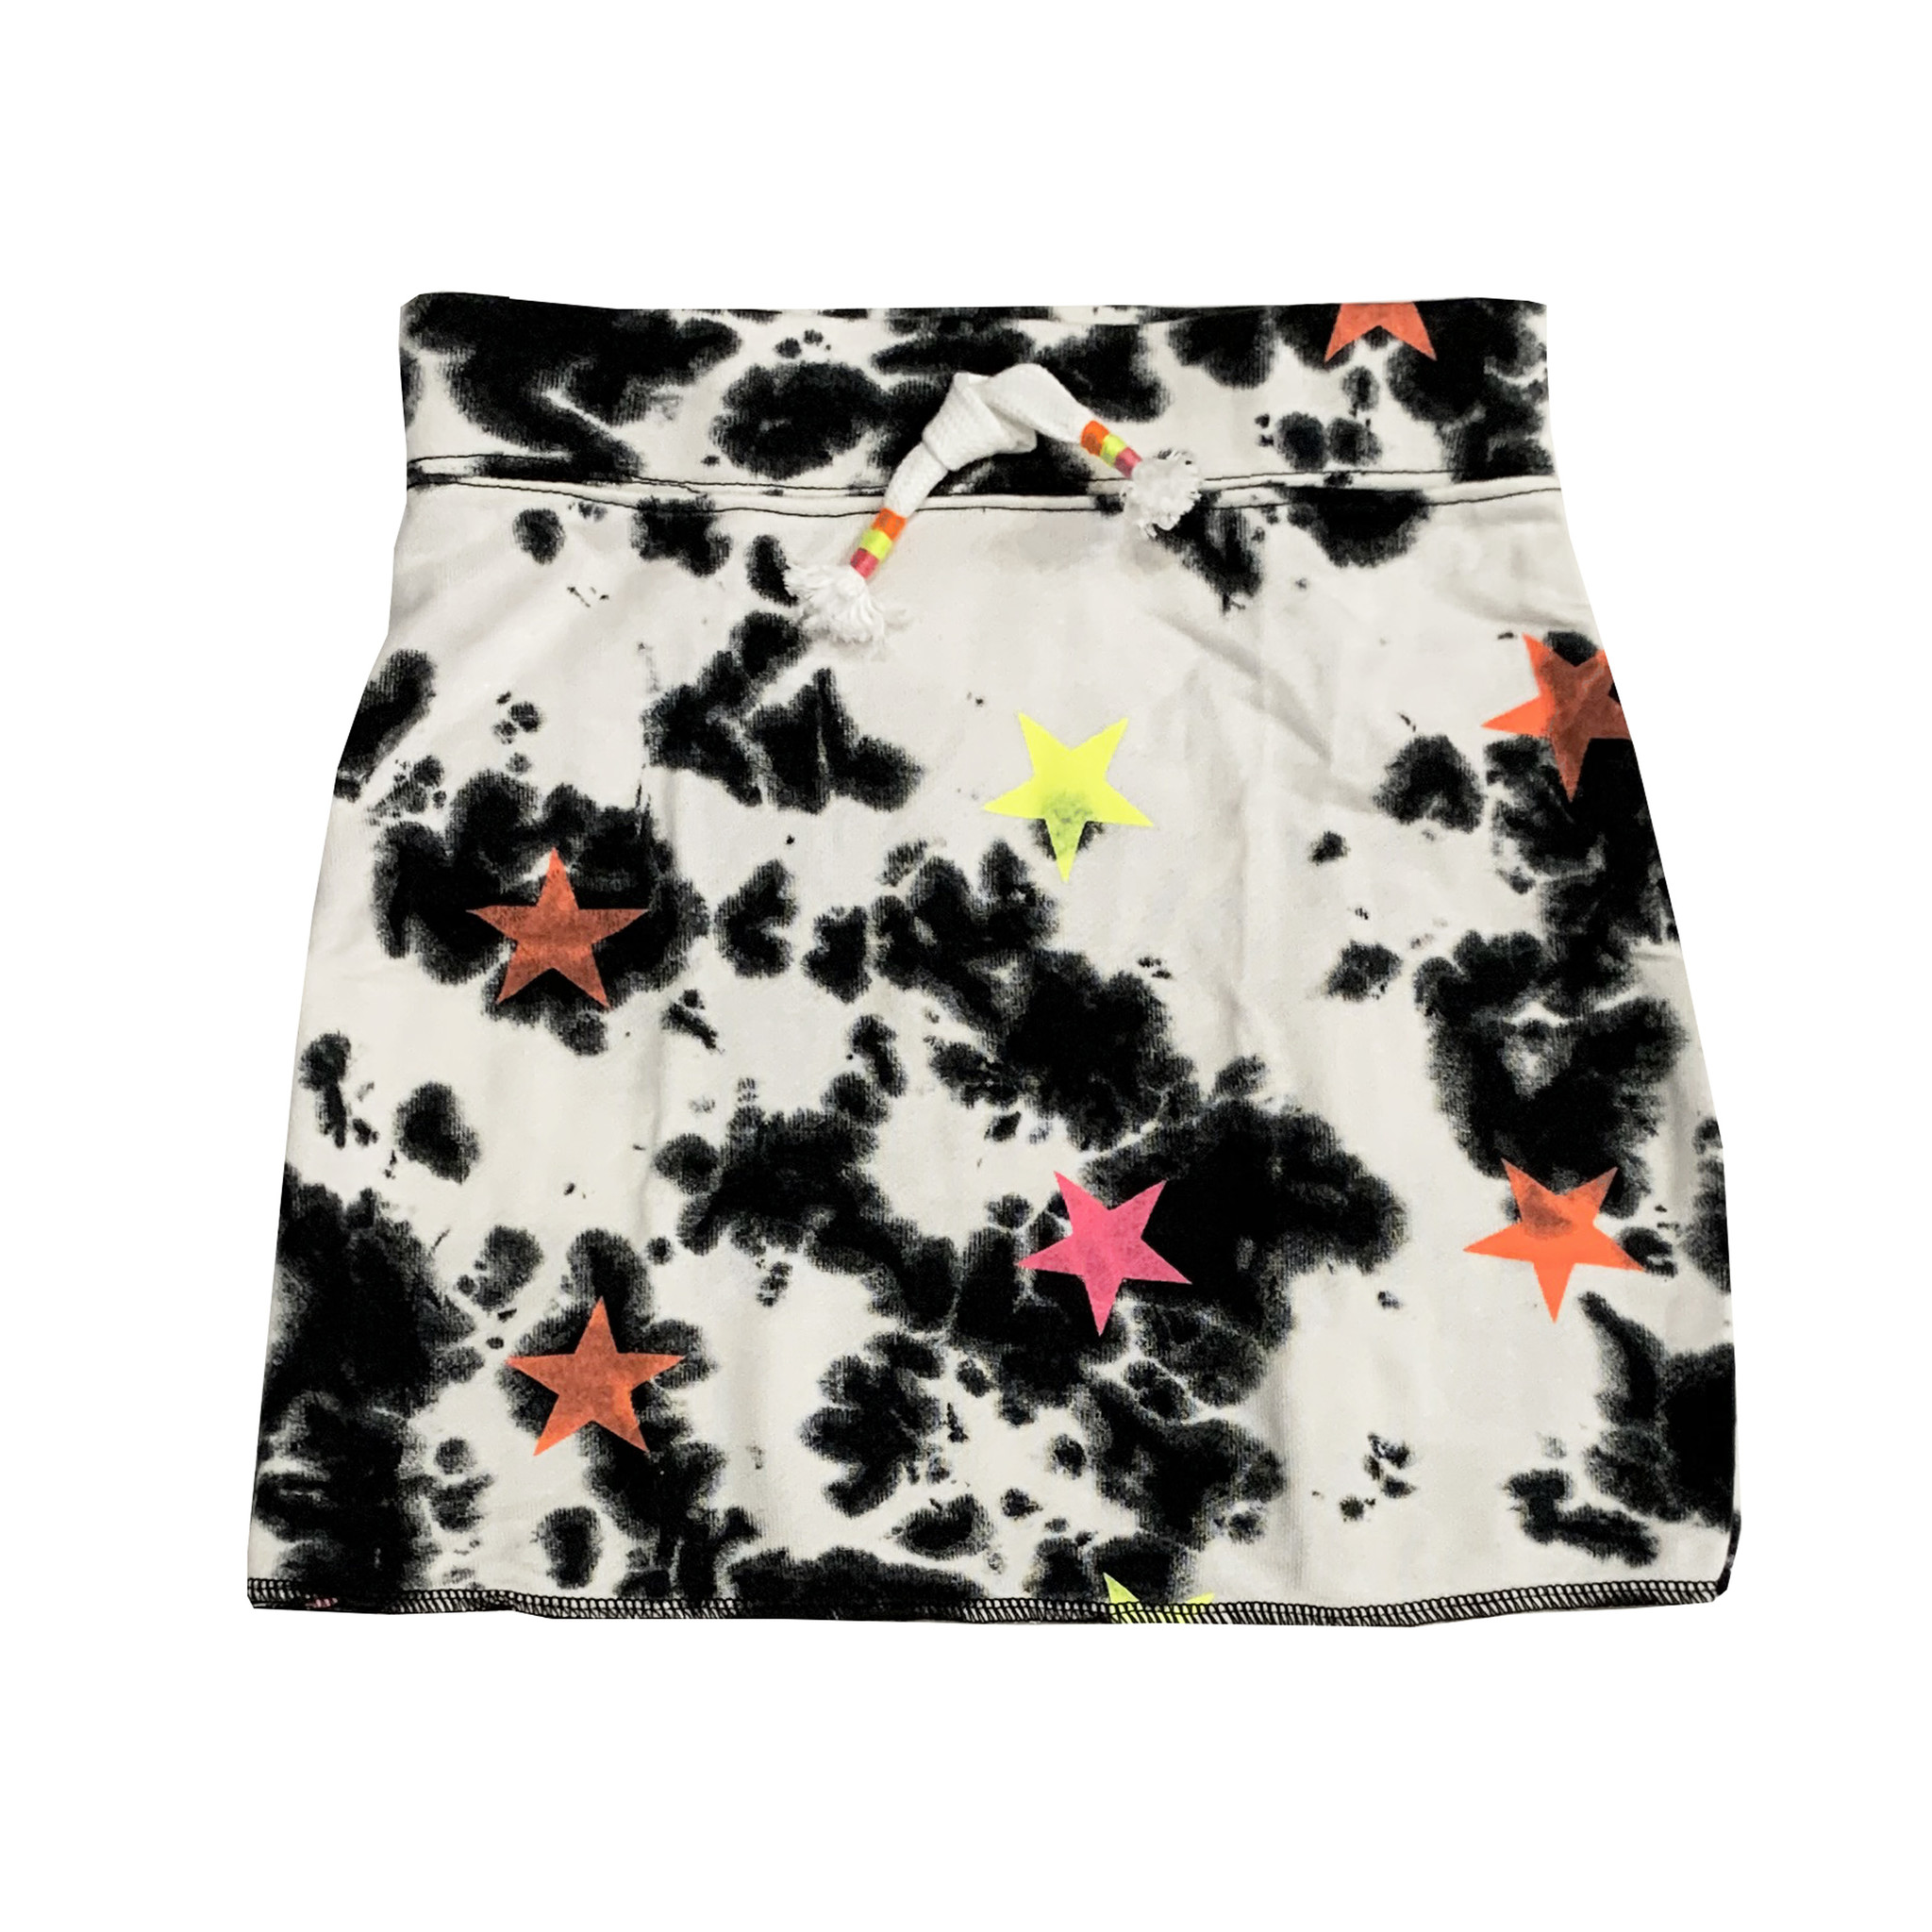 Flowers by Zoe Black & White Skirt with Neon Stars